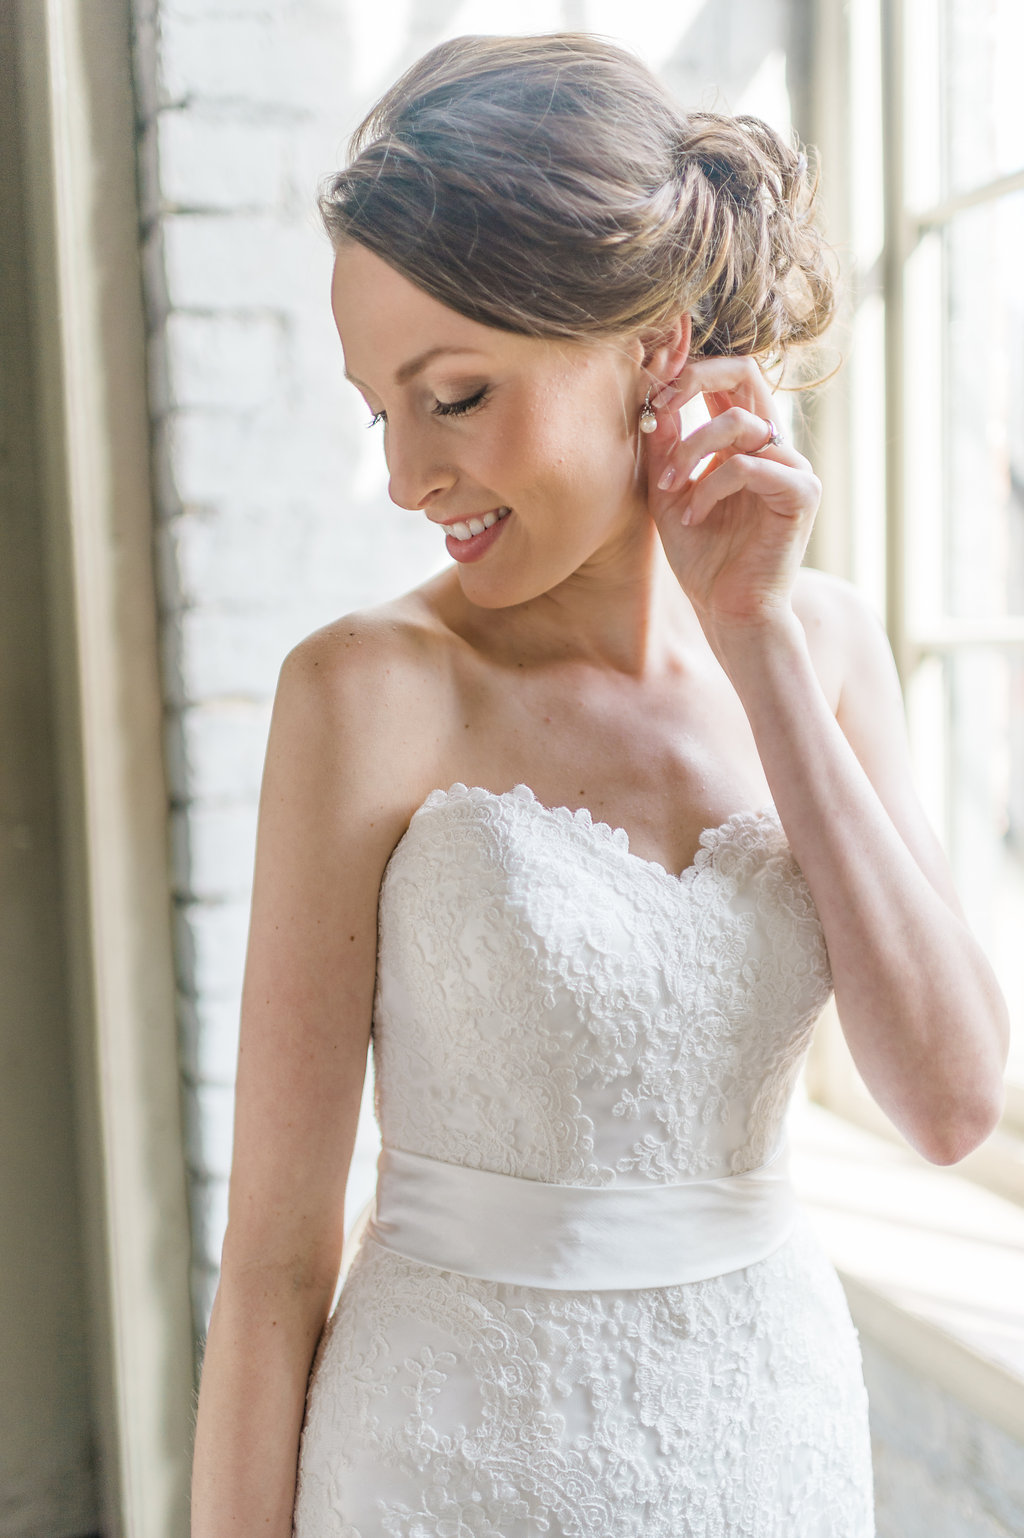 rach-lea-photography-rach-loves-troy-roundhouse-railroad-museum-wedding-ivory-and-beau-savannah-wedding-planner-savannah-weddings-savannah-florist-ivory-and-beau-bridal-boutique-succulent-blush-wedding-6.jpg